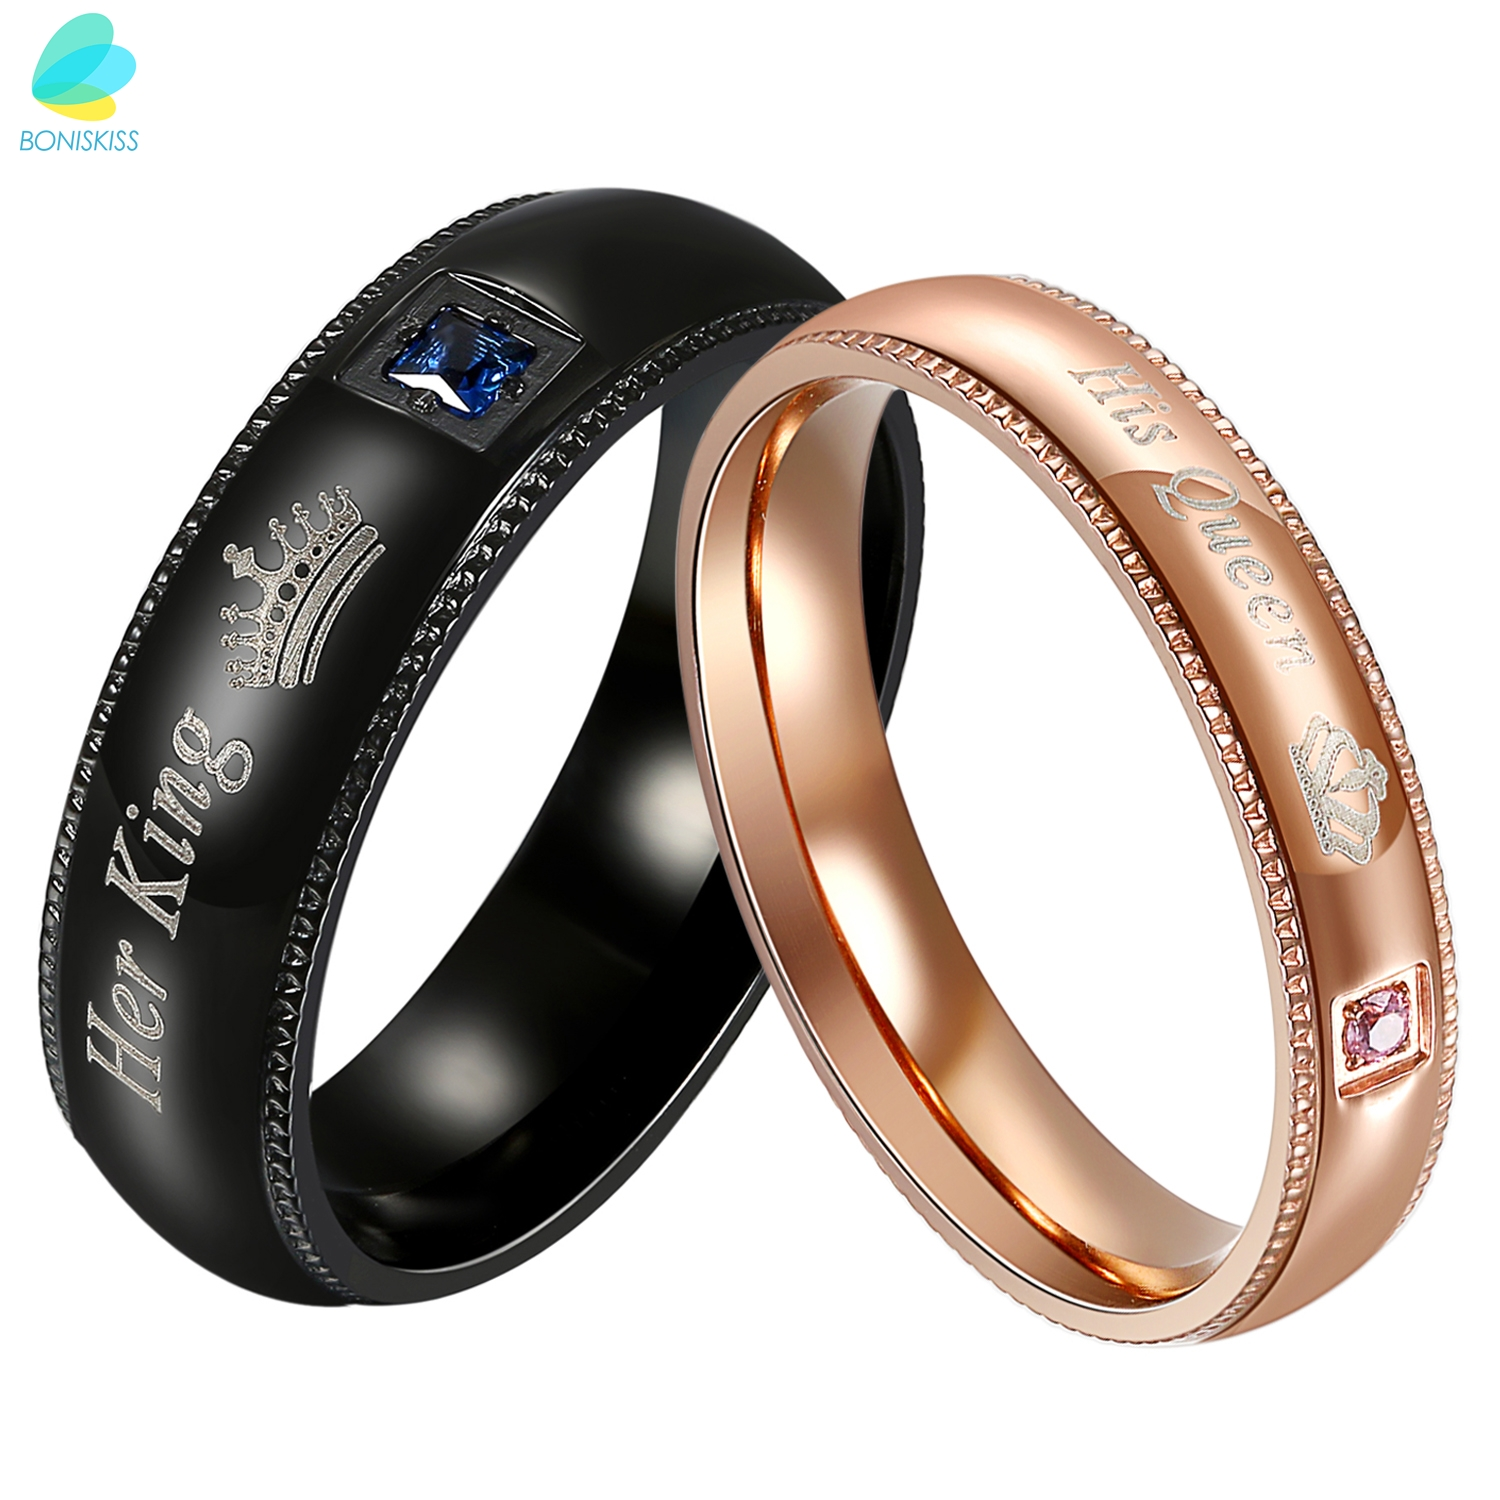 gold lining for edge inside rings ring beveled men dsc groove with fit flat polished and women wedding rose black products cz comfort bands diamond tungsten band